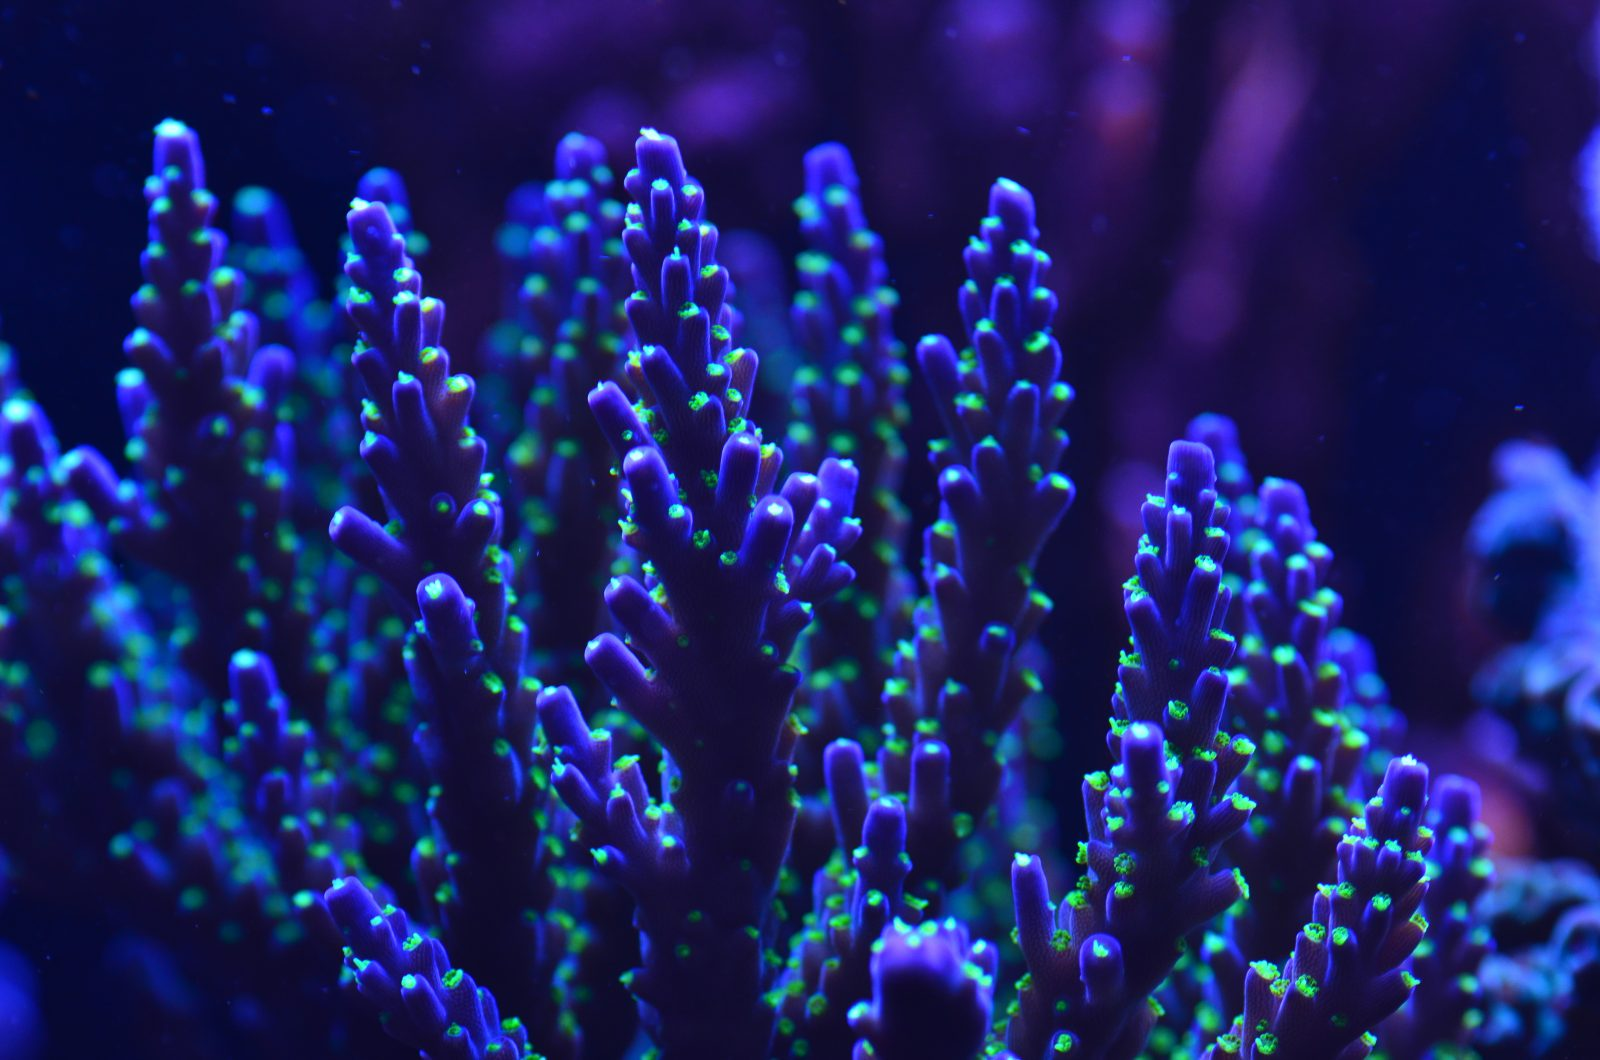 تیره آبی-sps-coral-macro-photo-led-light